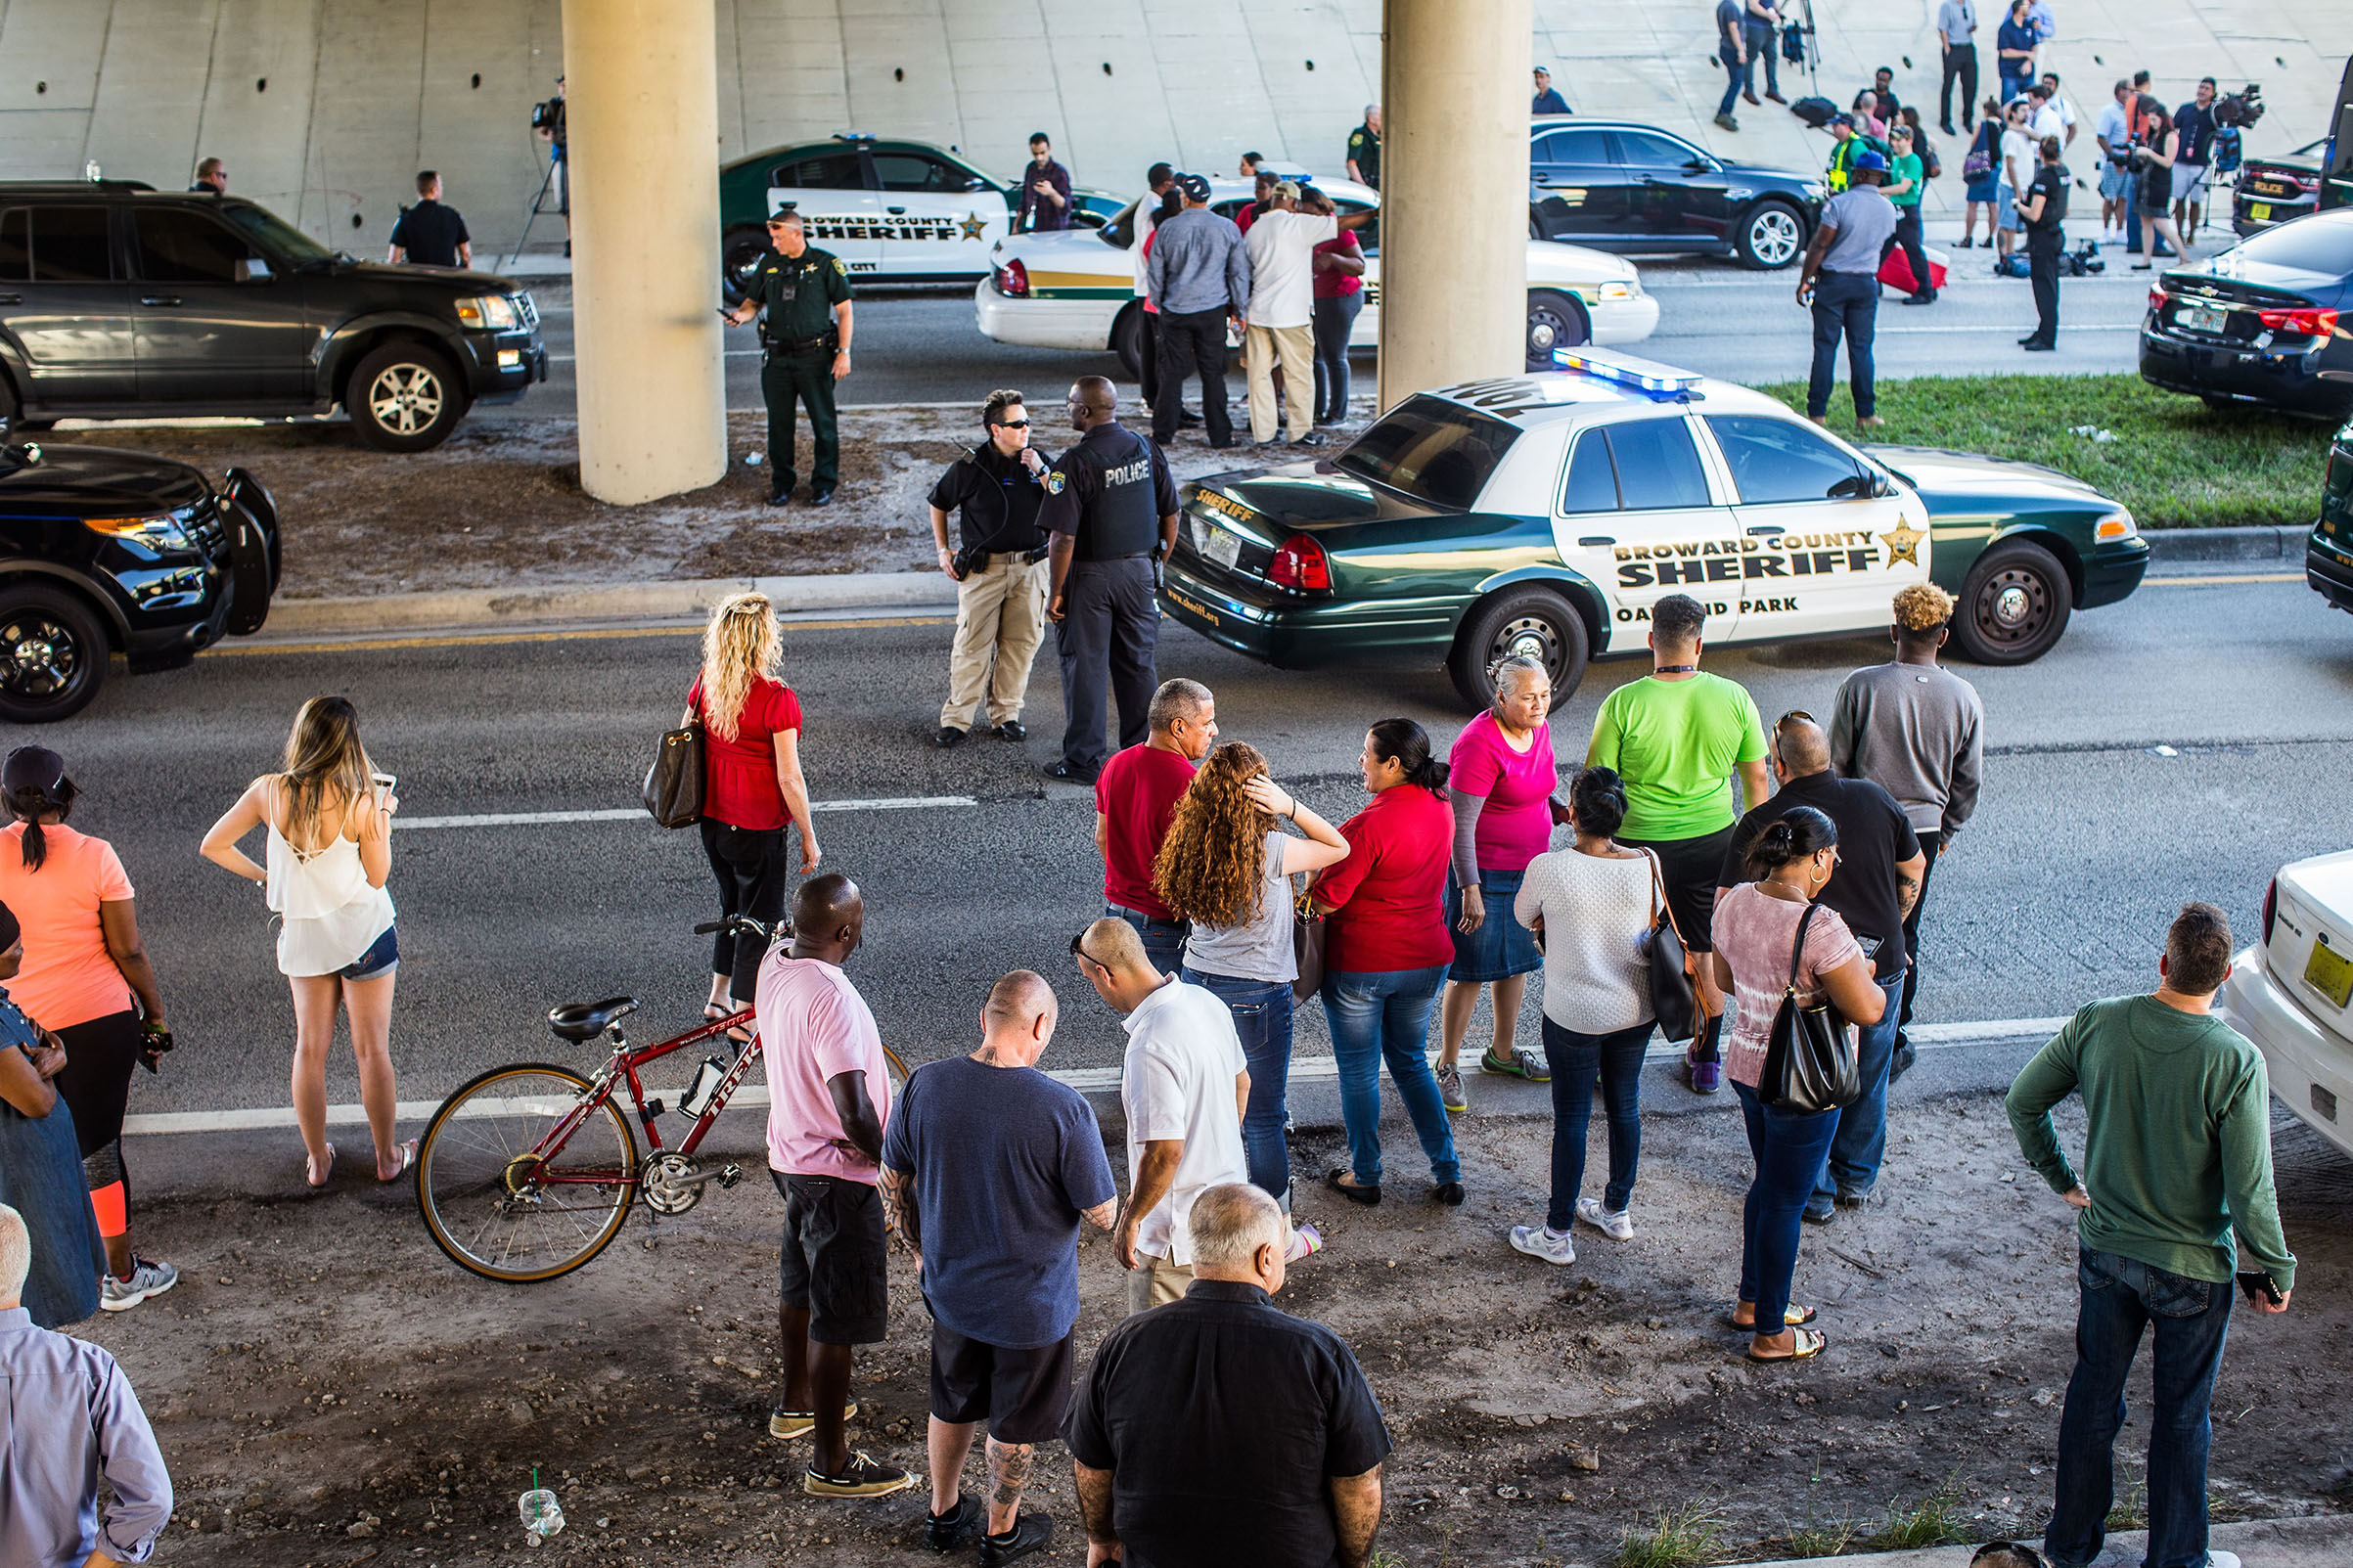 The FBI and police agencies from surrounding counties responded to a mass shooting at Marjory Stoneman Douglas High in Parkland, Fla on Feb. 14, 2018